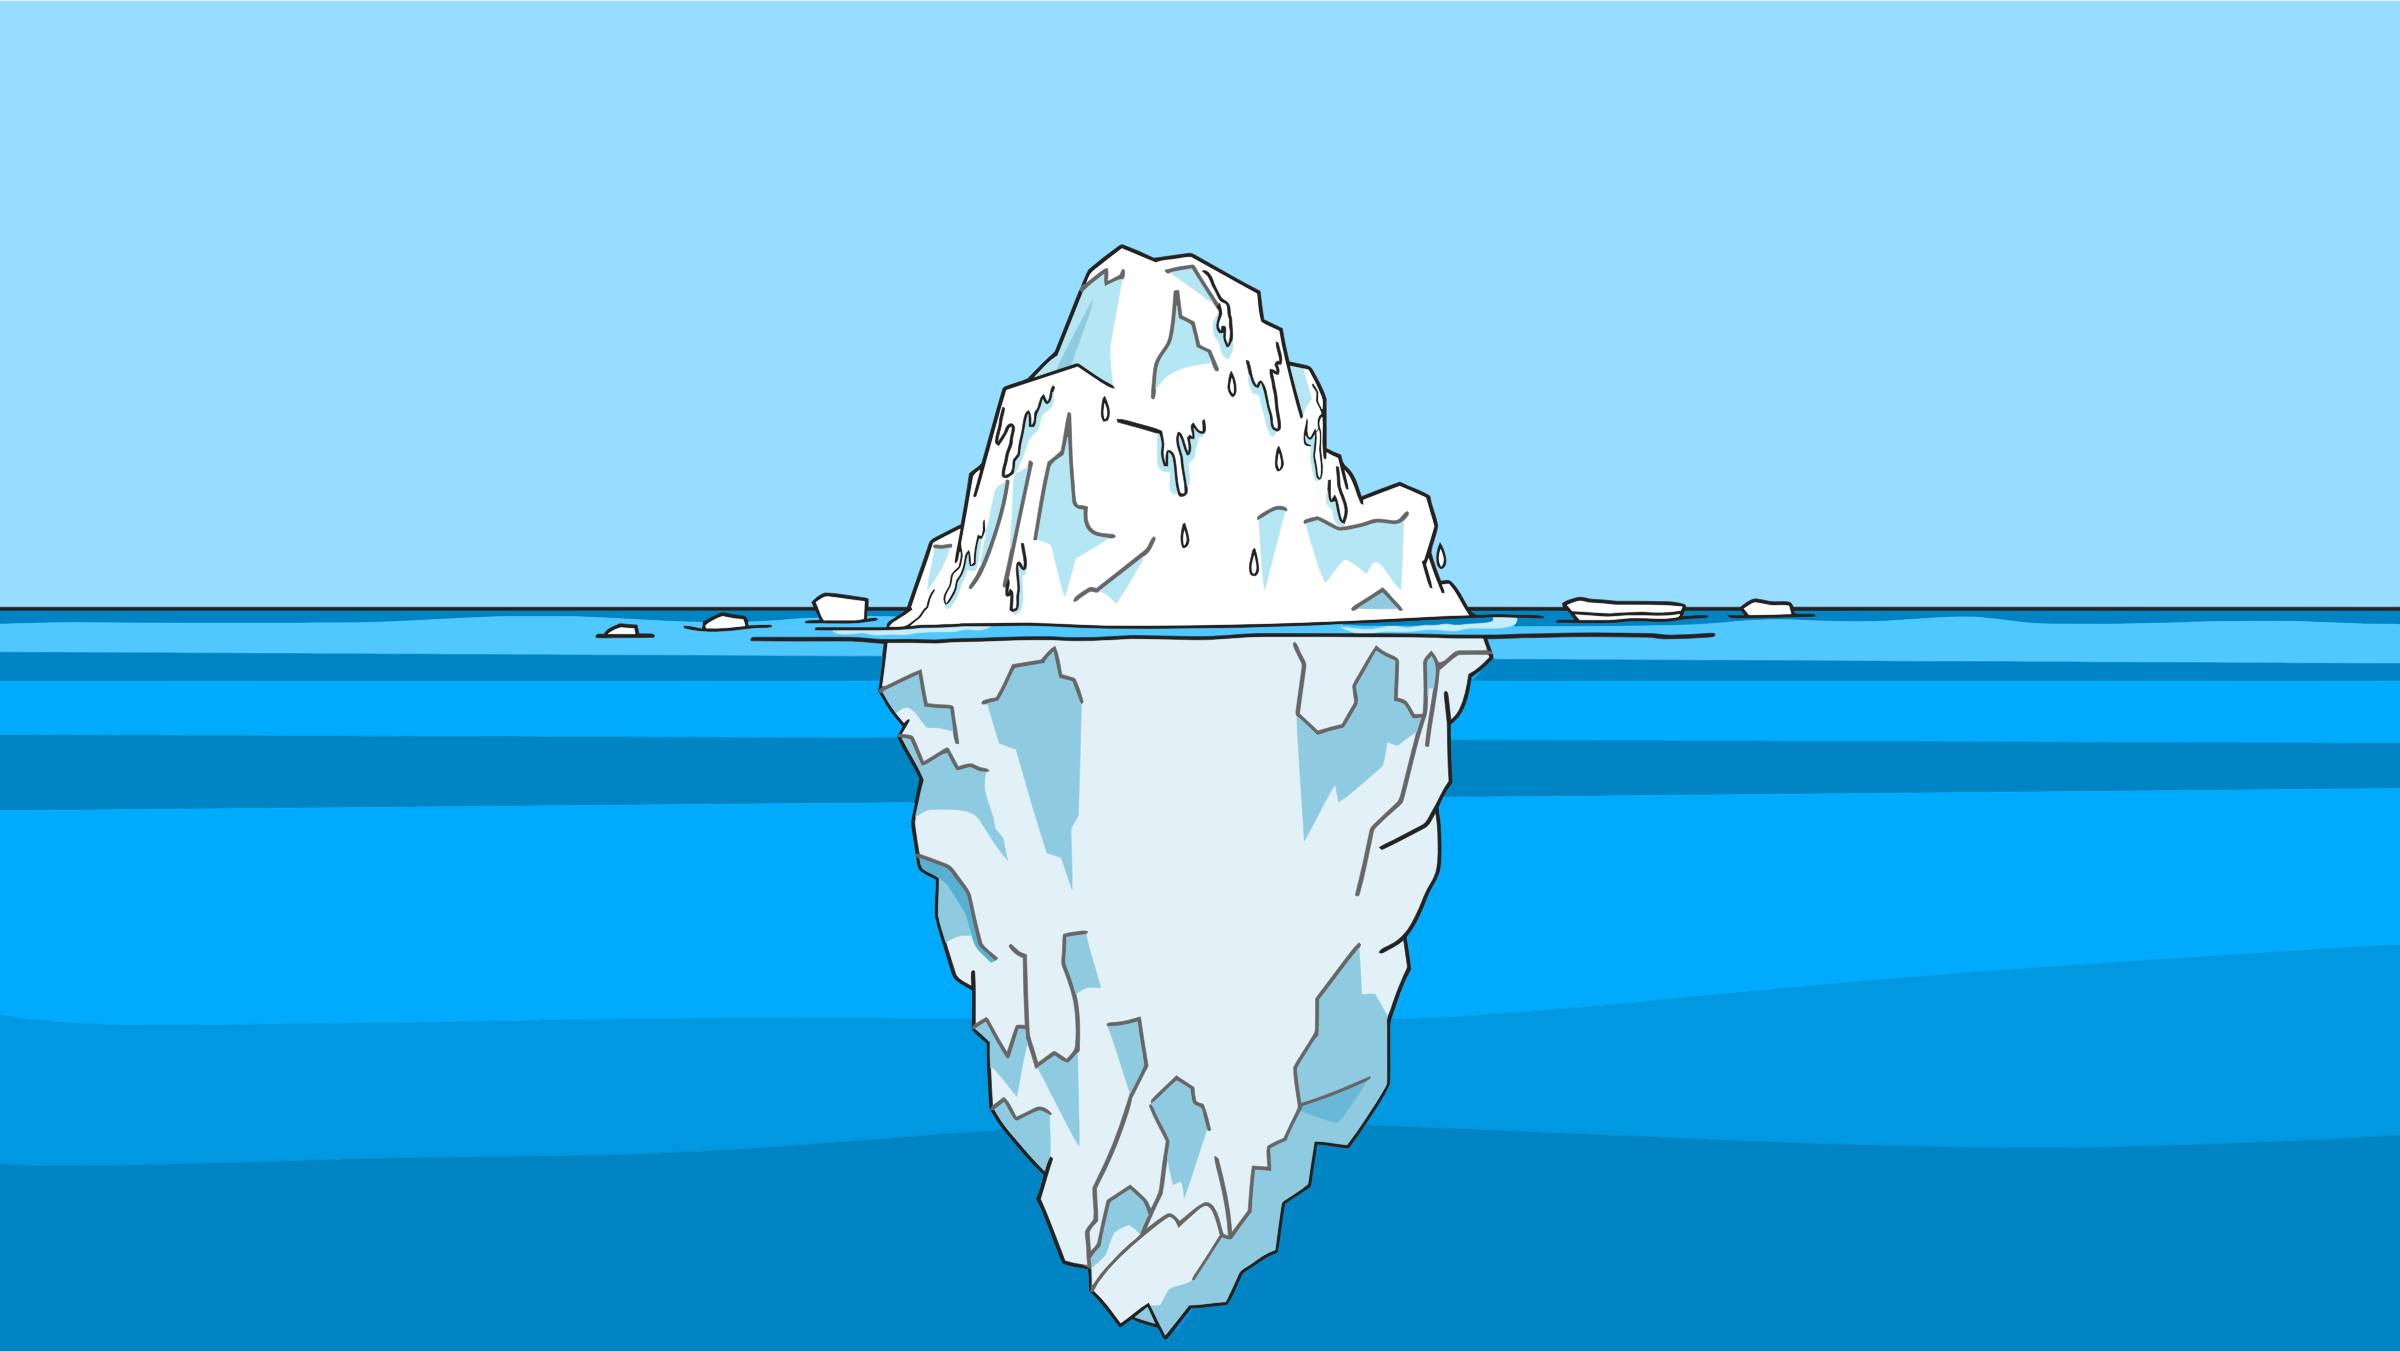 Tip Of The Iceberg by GDJ